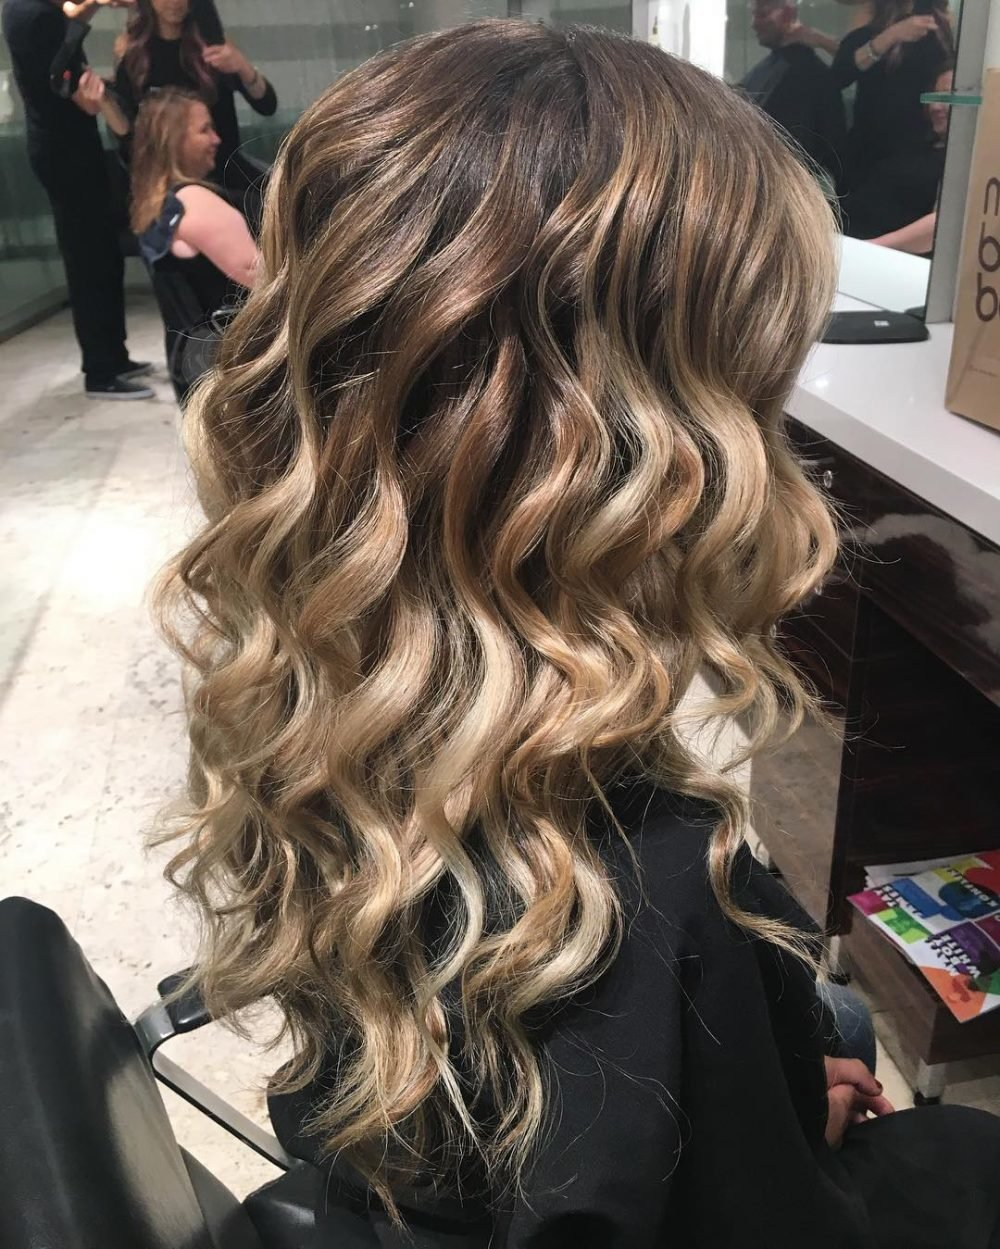 Free 18 Stunning Curly Prom Hairstyles For 2019 Updos Down Wallpaper